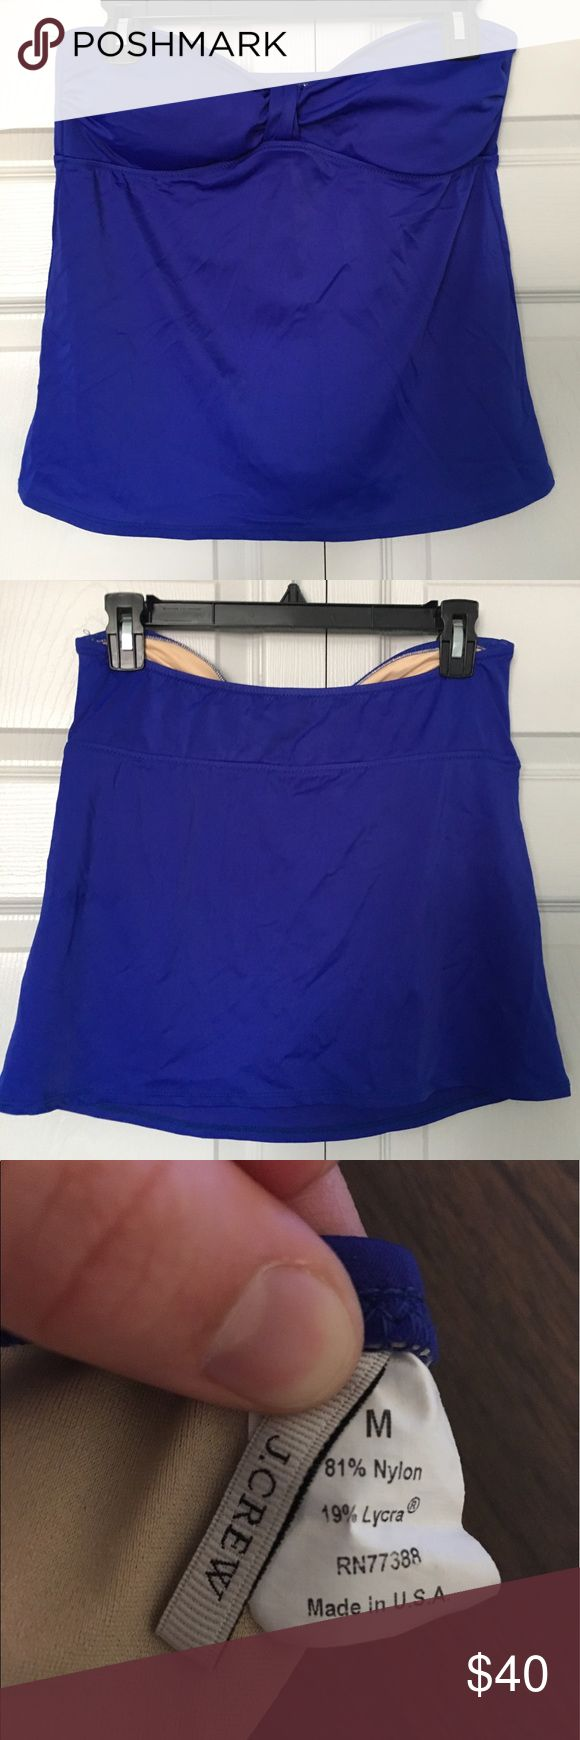 NWOT J. Crew Tankini Top No bottoms, but would look great with black/white bottoms! Worn once, briefly, it's a little too short on my torso... Beautiful deep royal blue, feel free to bundle, I'm open to reasonable offers but no lowballing please! :) J. Crew Swim